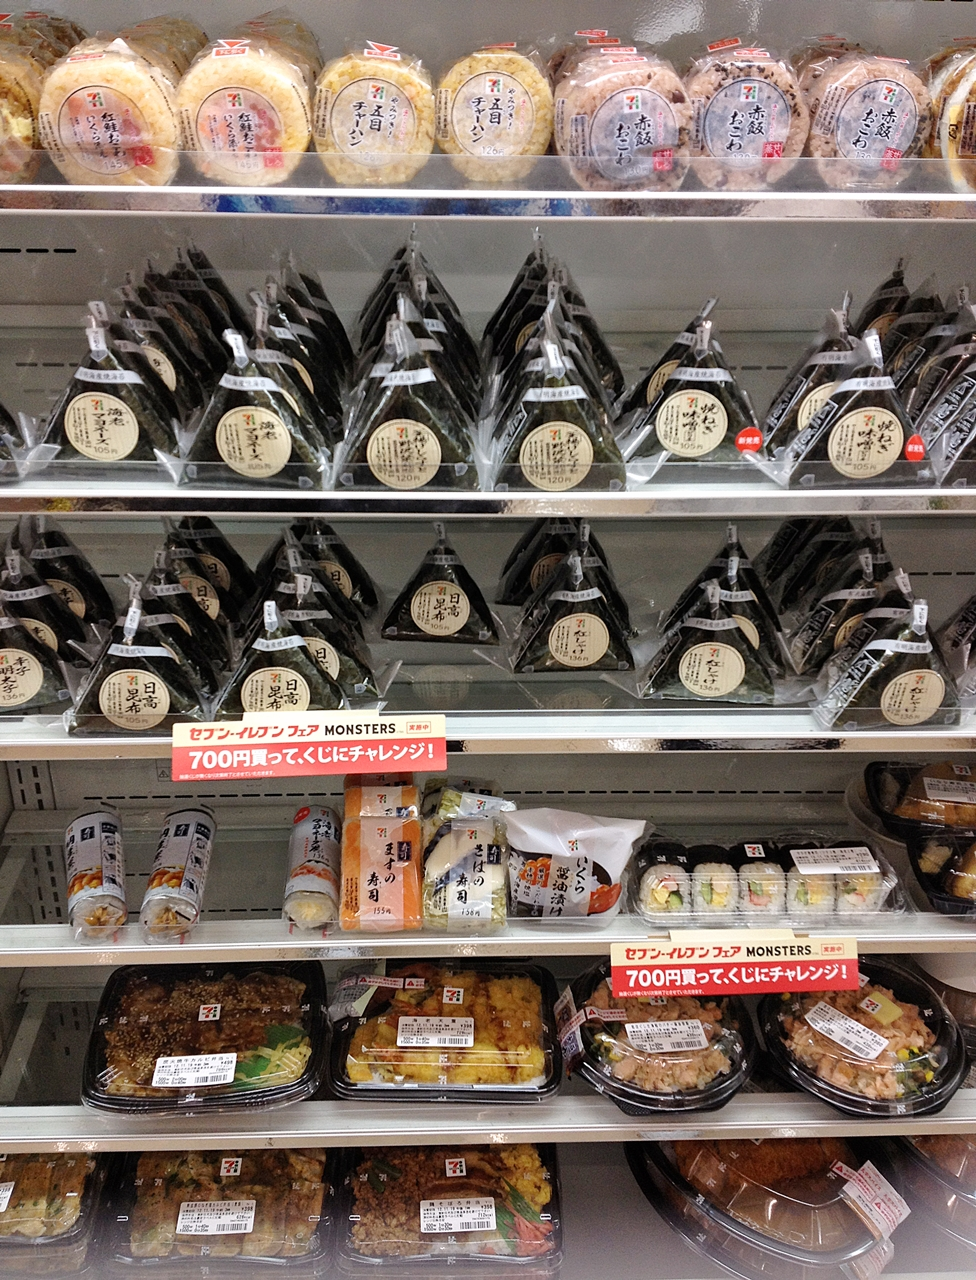 Cuisine paradise singapore food blog recipes reviews and travel exploring the convenience stores and bakeries in tokyo japan forumfinder Gallery